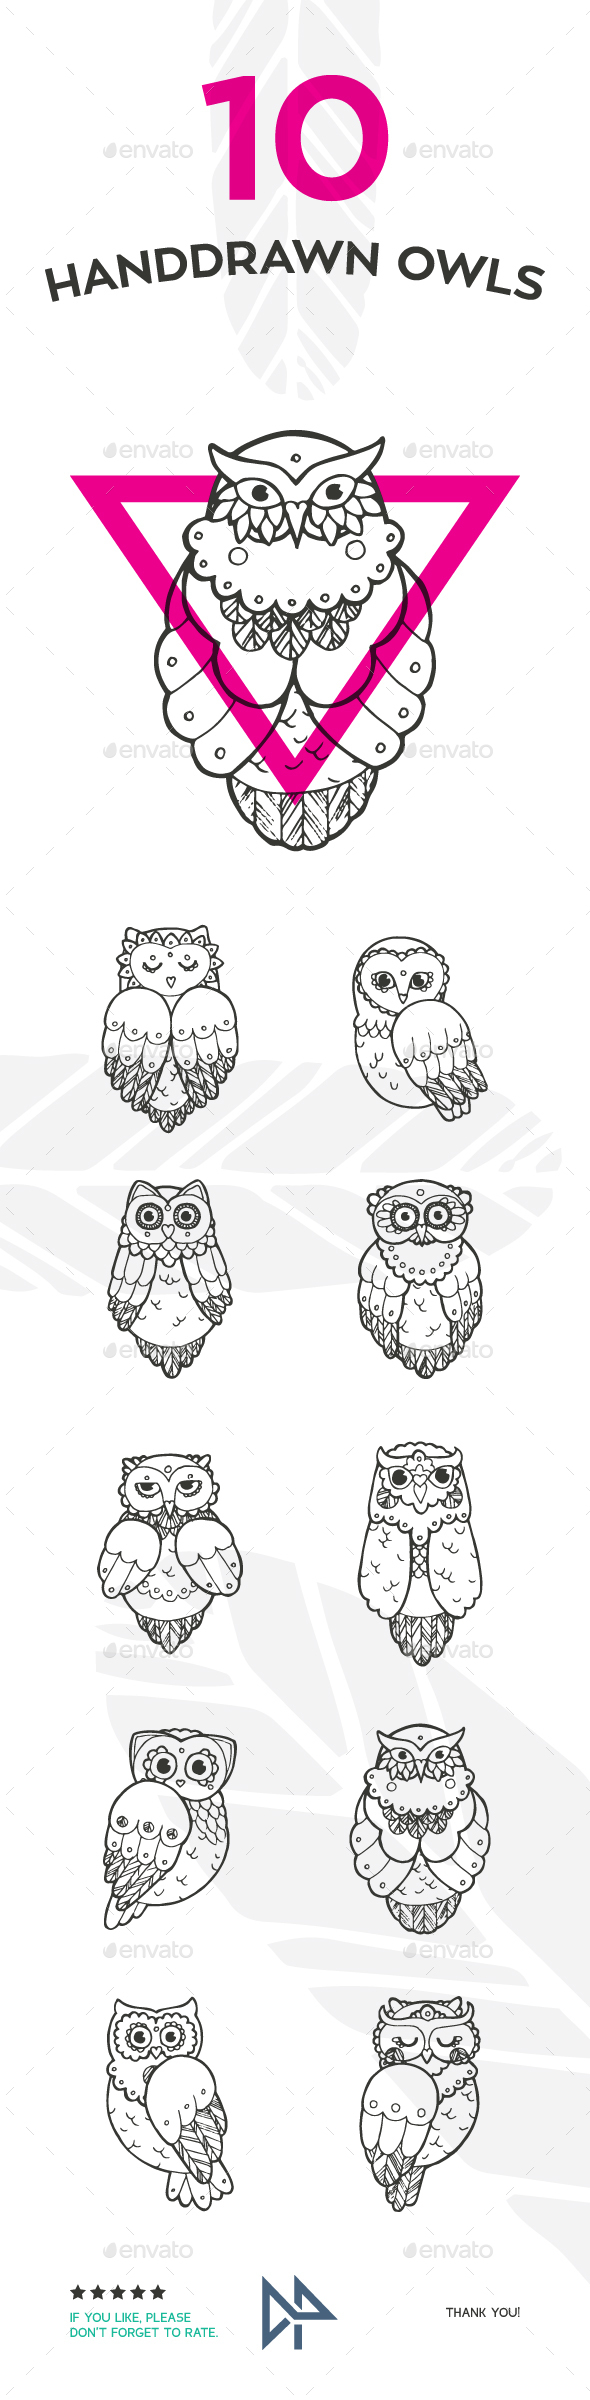 Handdrawn Owls - Animals Characters